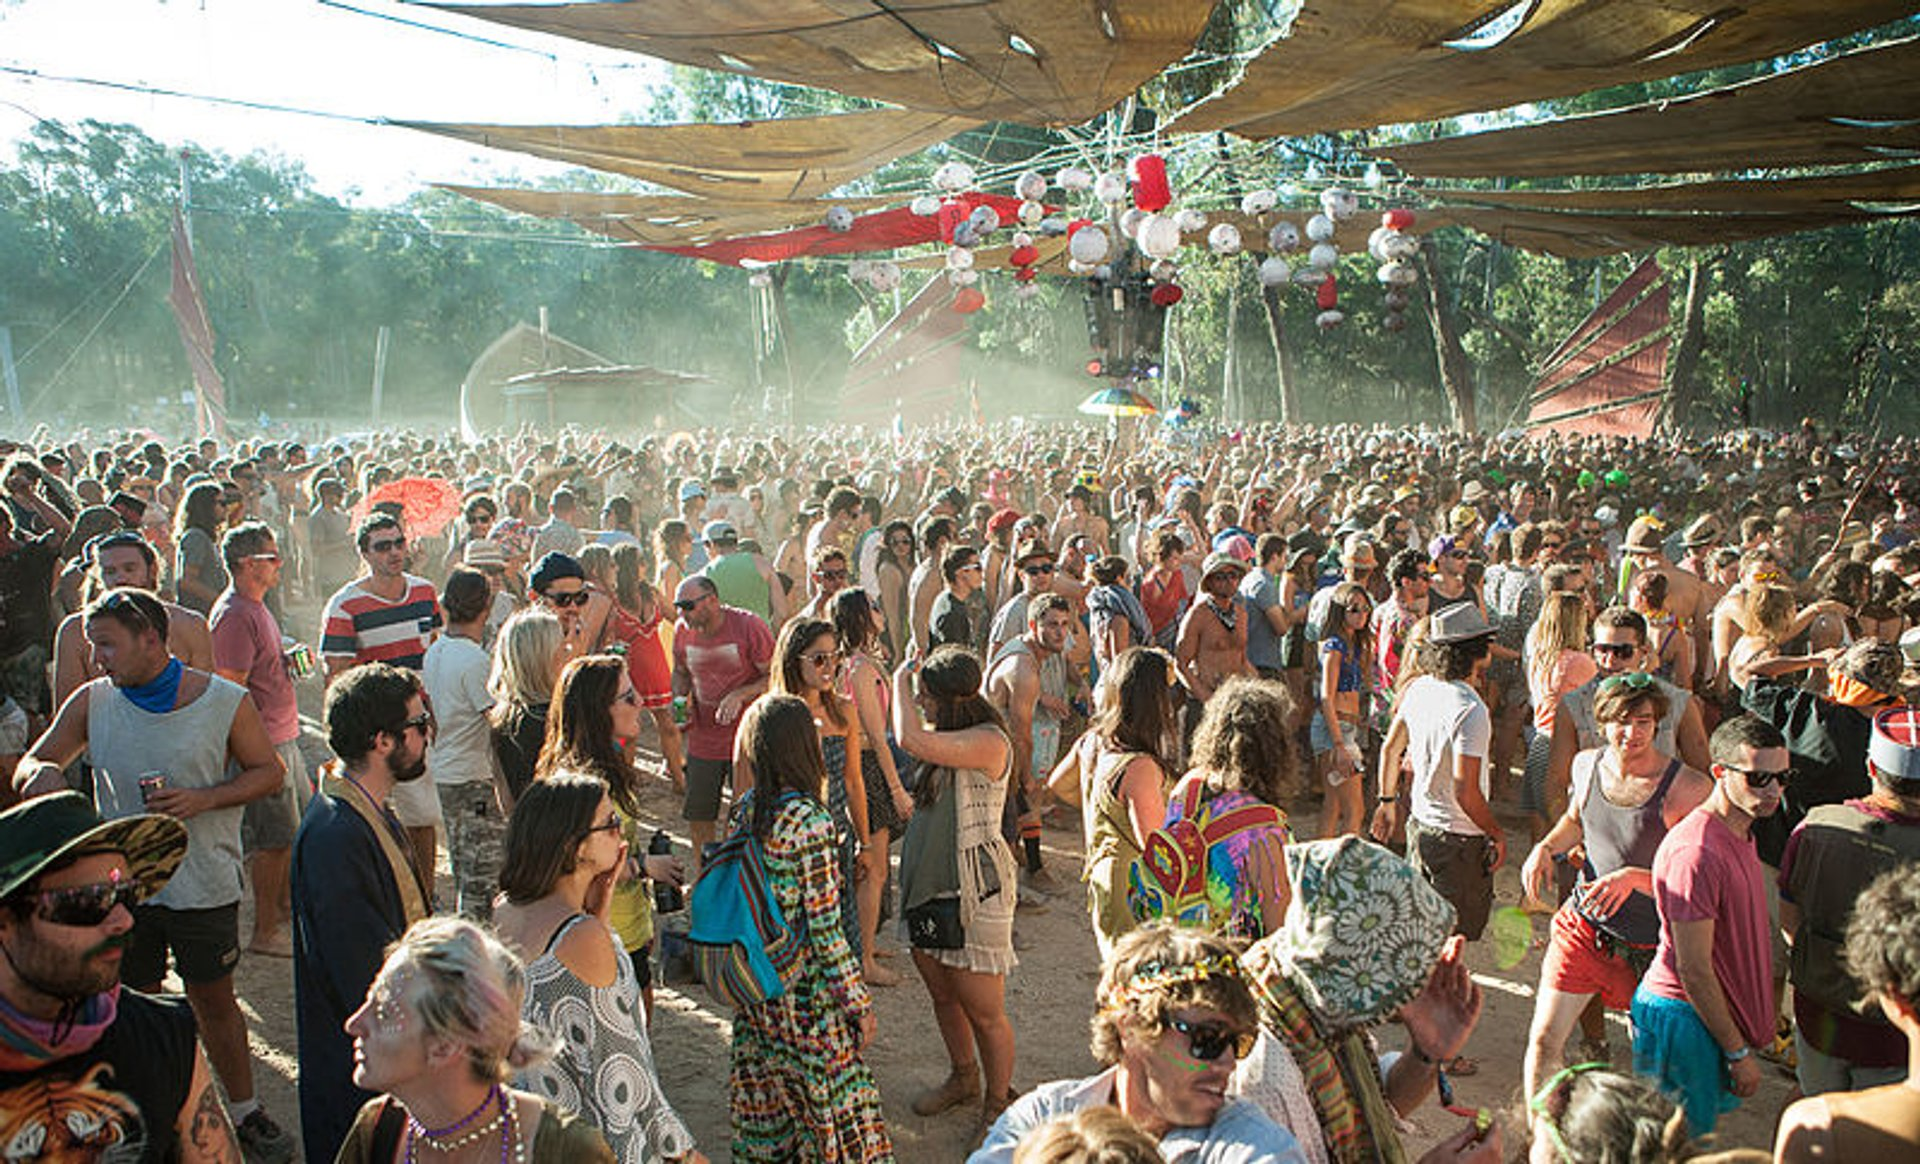 Rainbow Serpent Festival in Victoria 2019 - Best Time